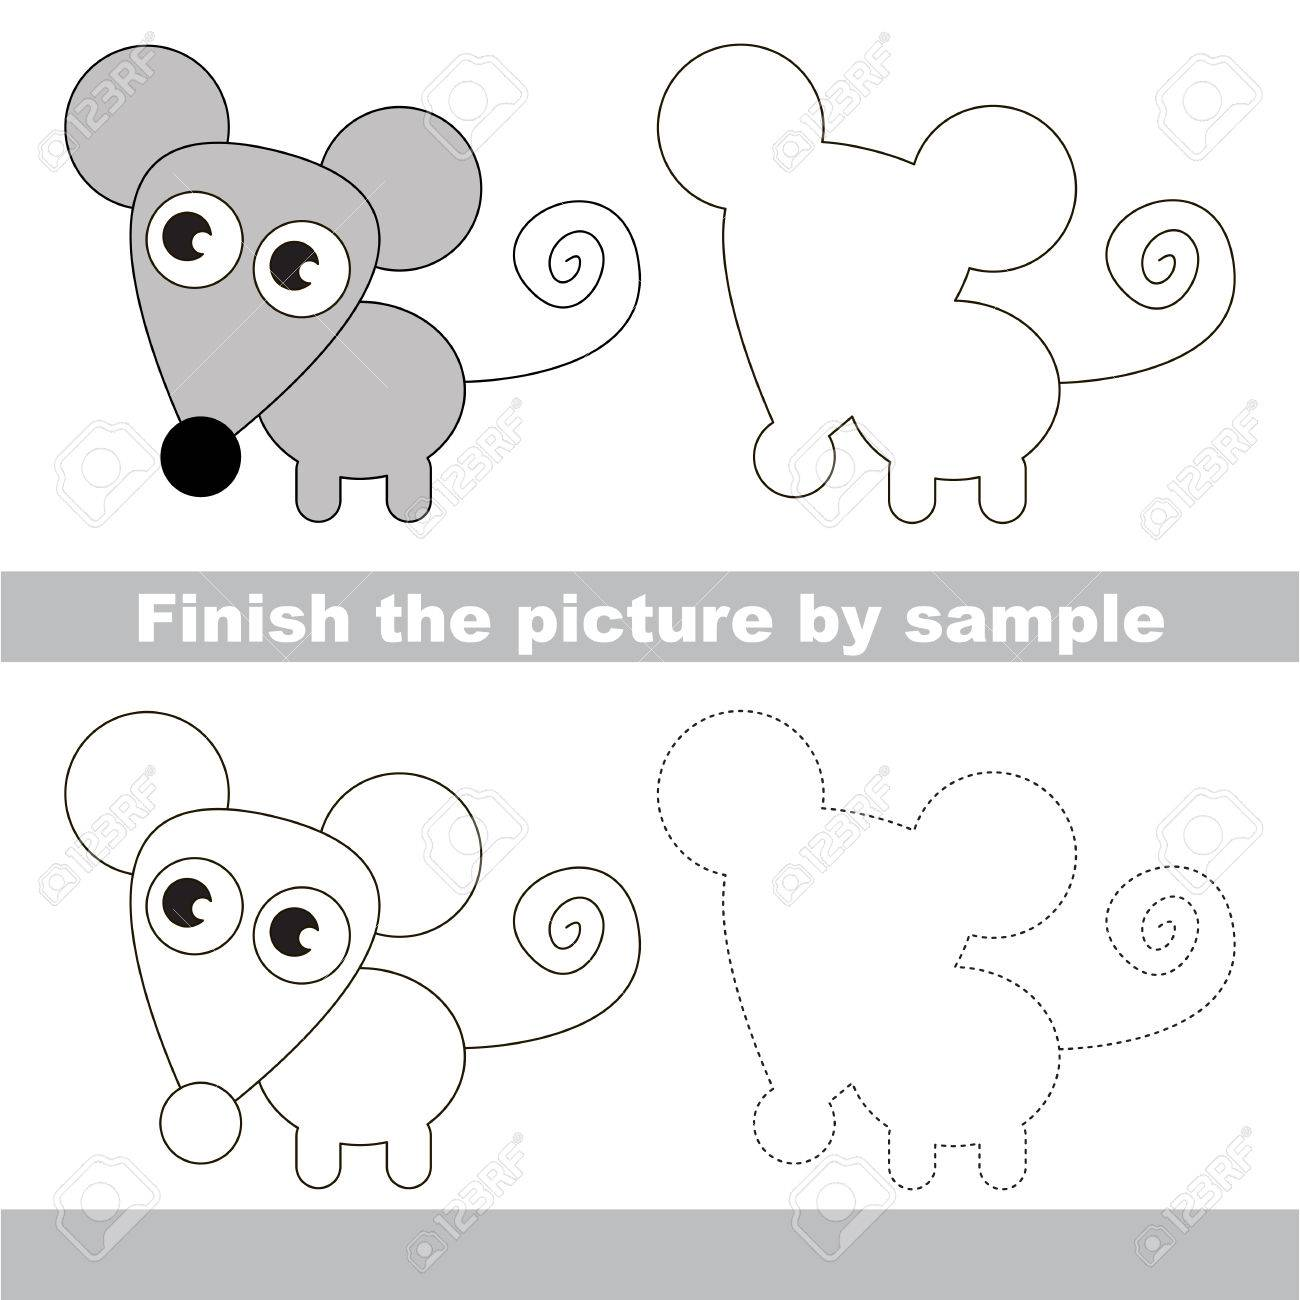 drawing worksheet for children finish the picture and draw the cute mouse stock vector - Children Drawing Sheets